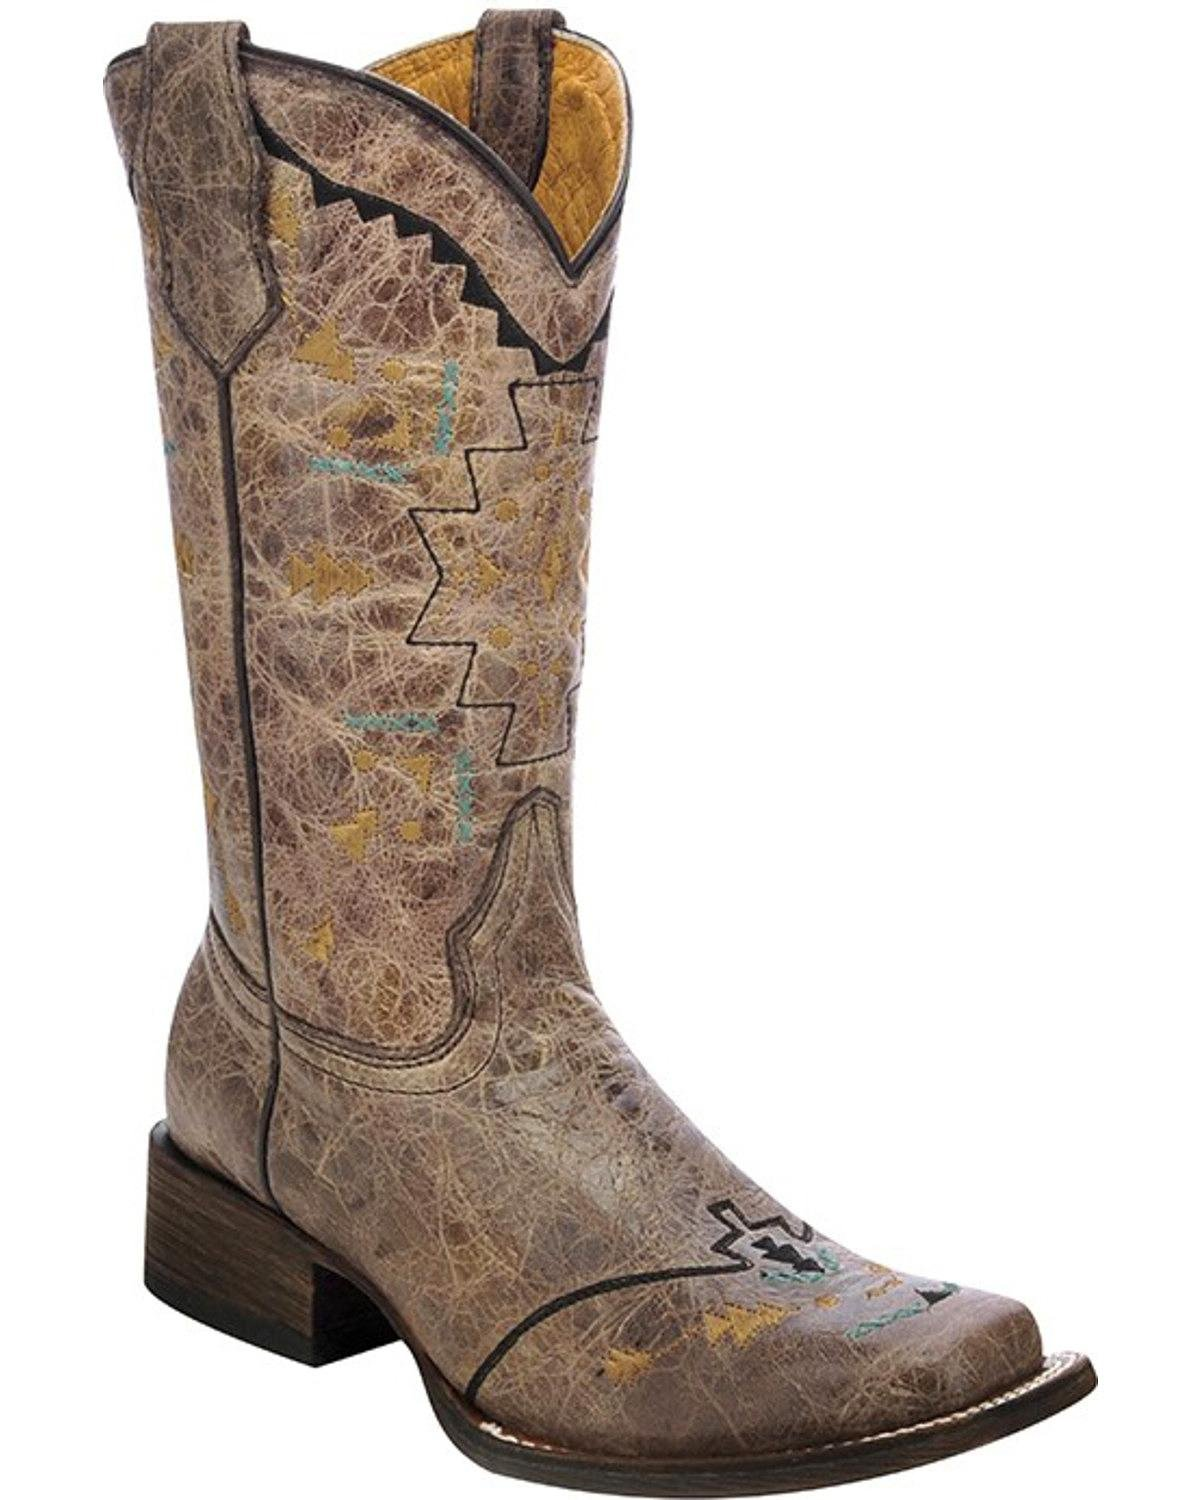 Corral Girls' Aztec Embroidery Cowgirl Boot Square Toe Gold 5.5